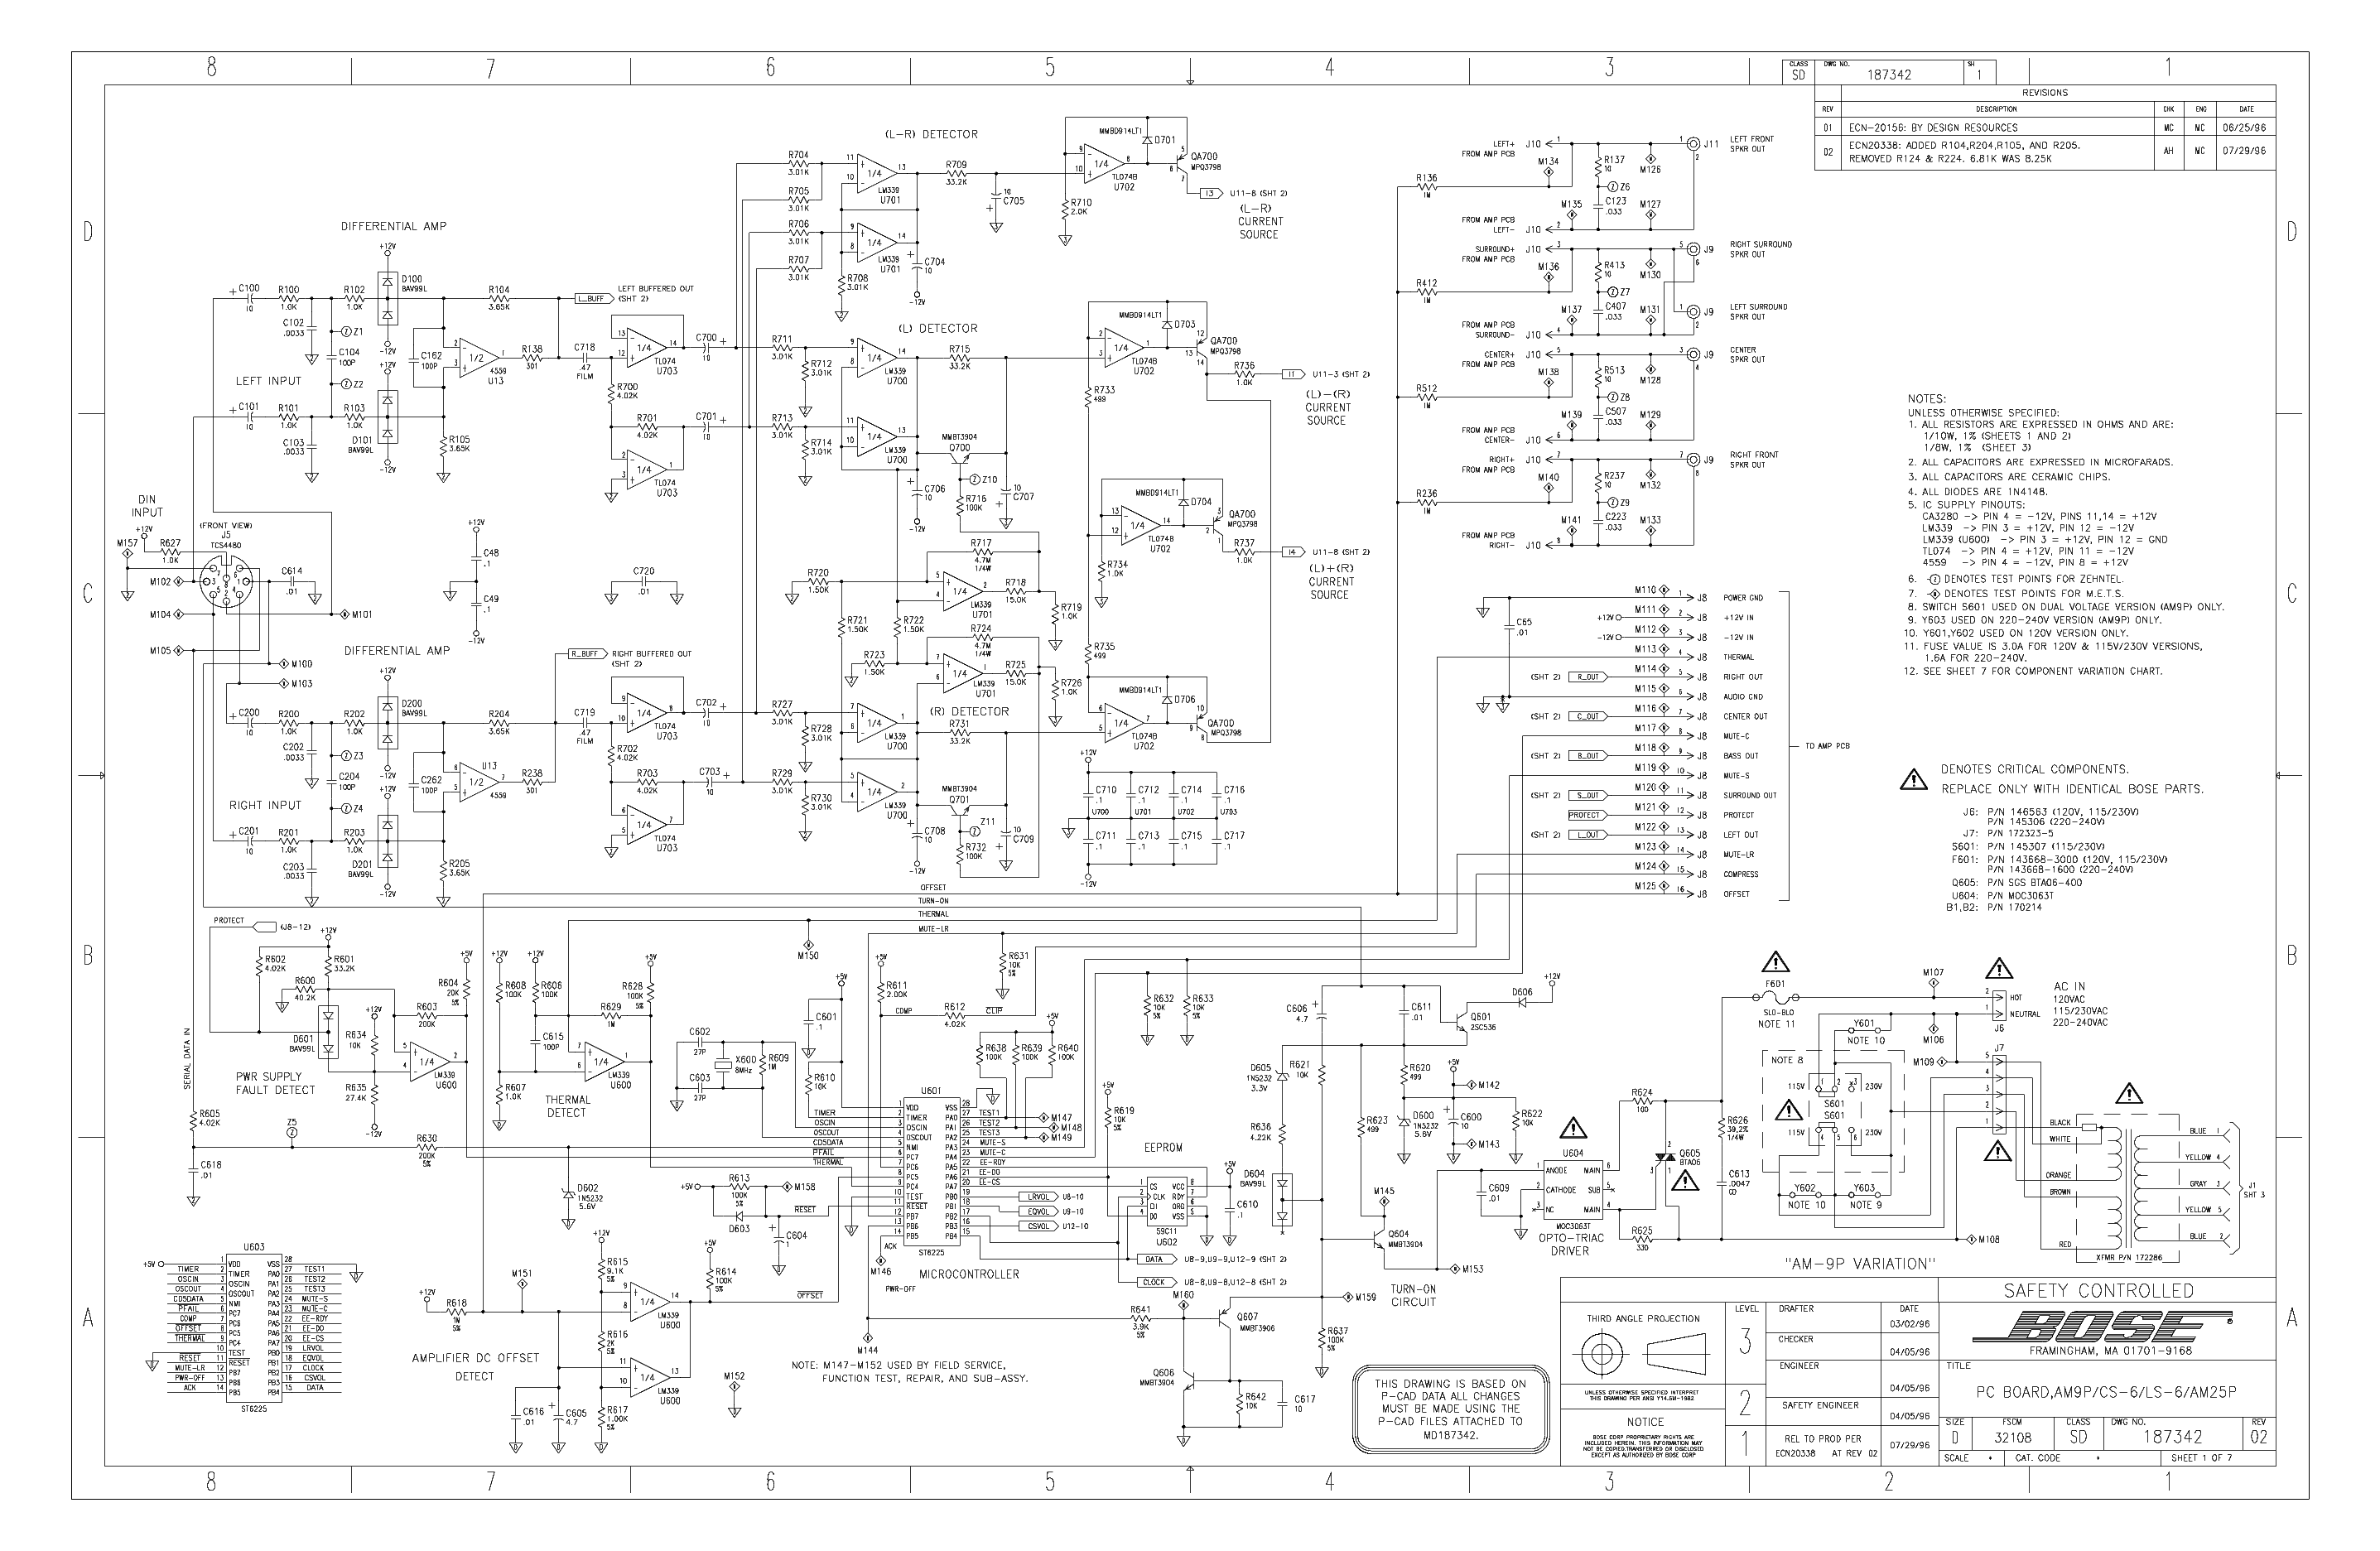 Bose 321 Subwoofer Wiring Diagram. Diagrams. Auto Fuse Box